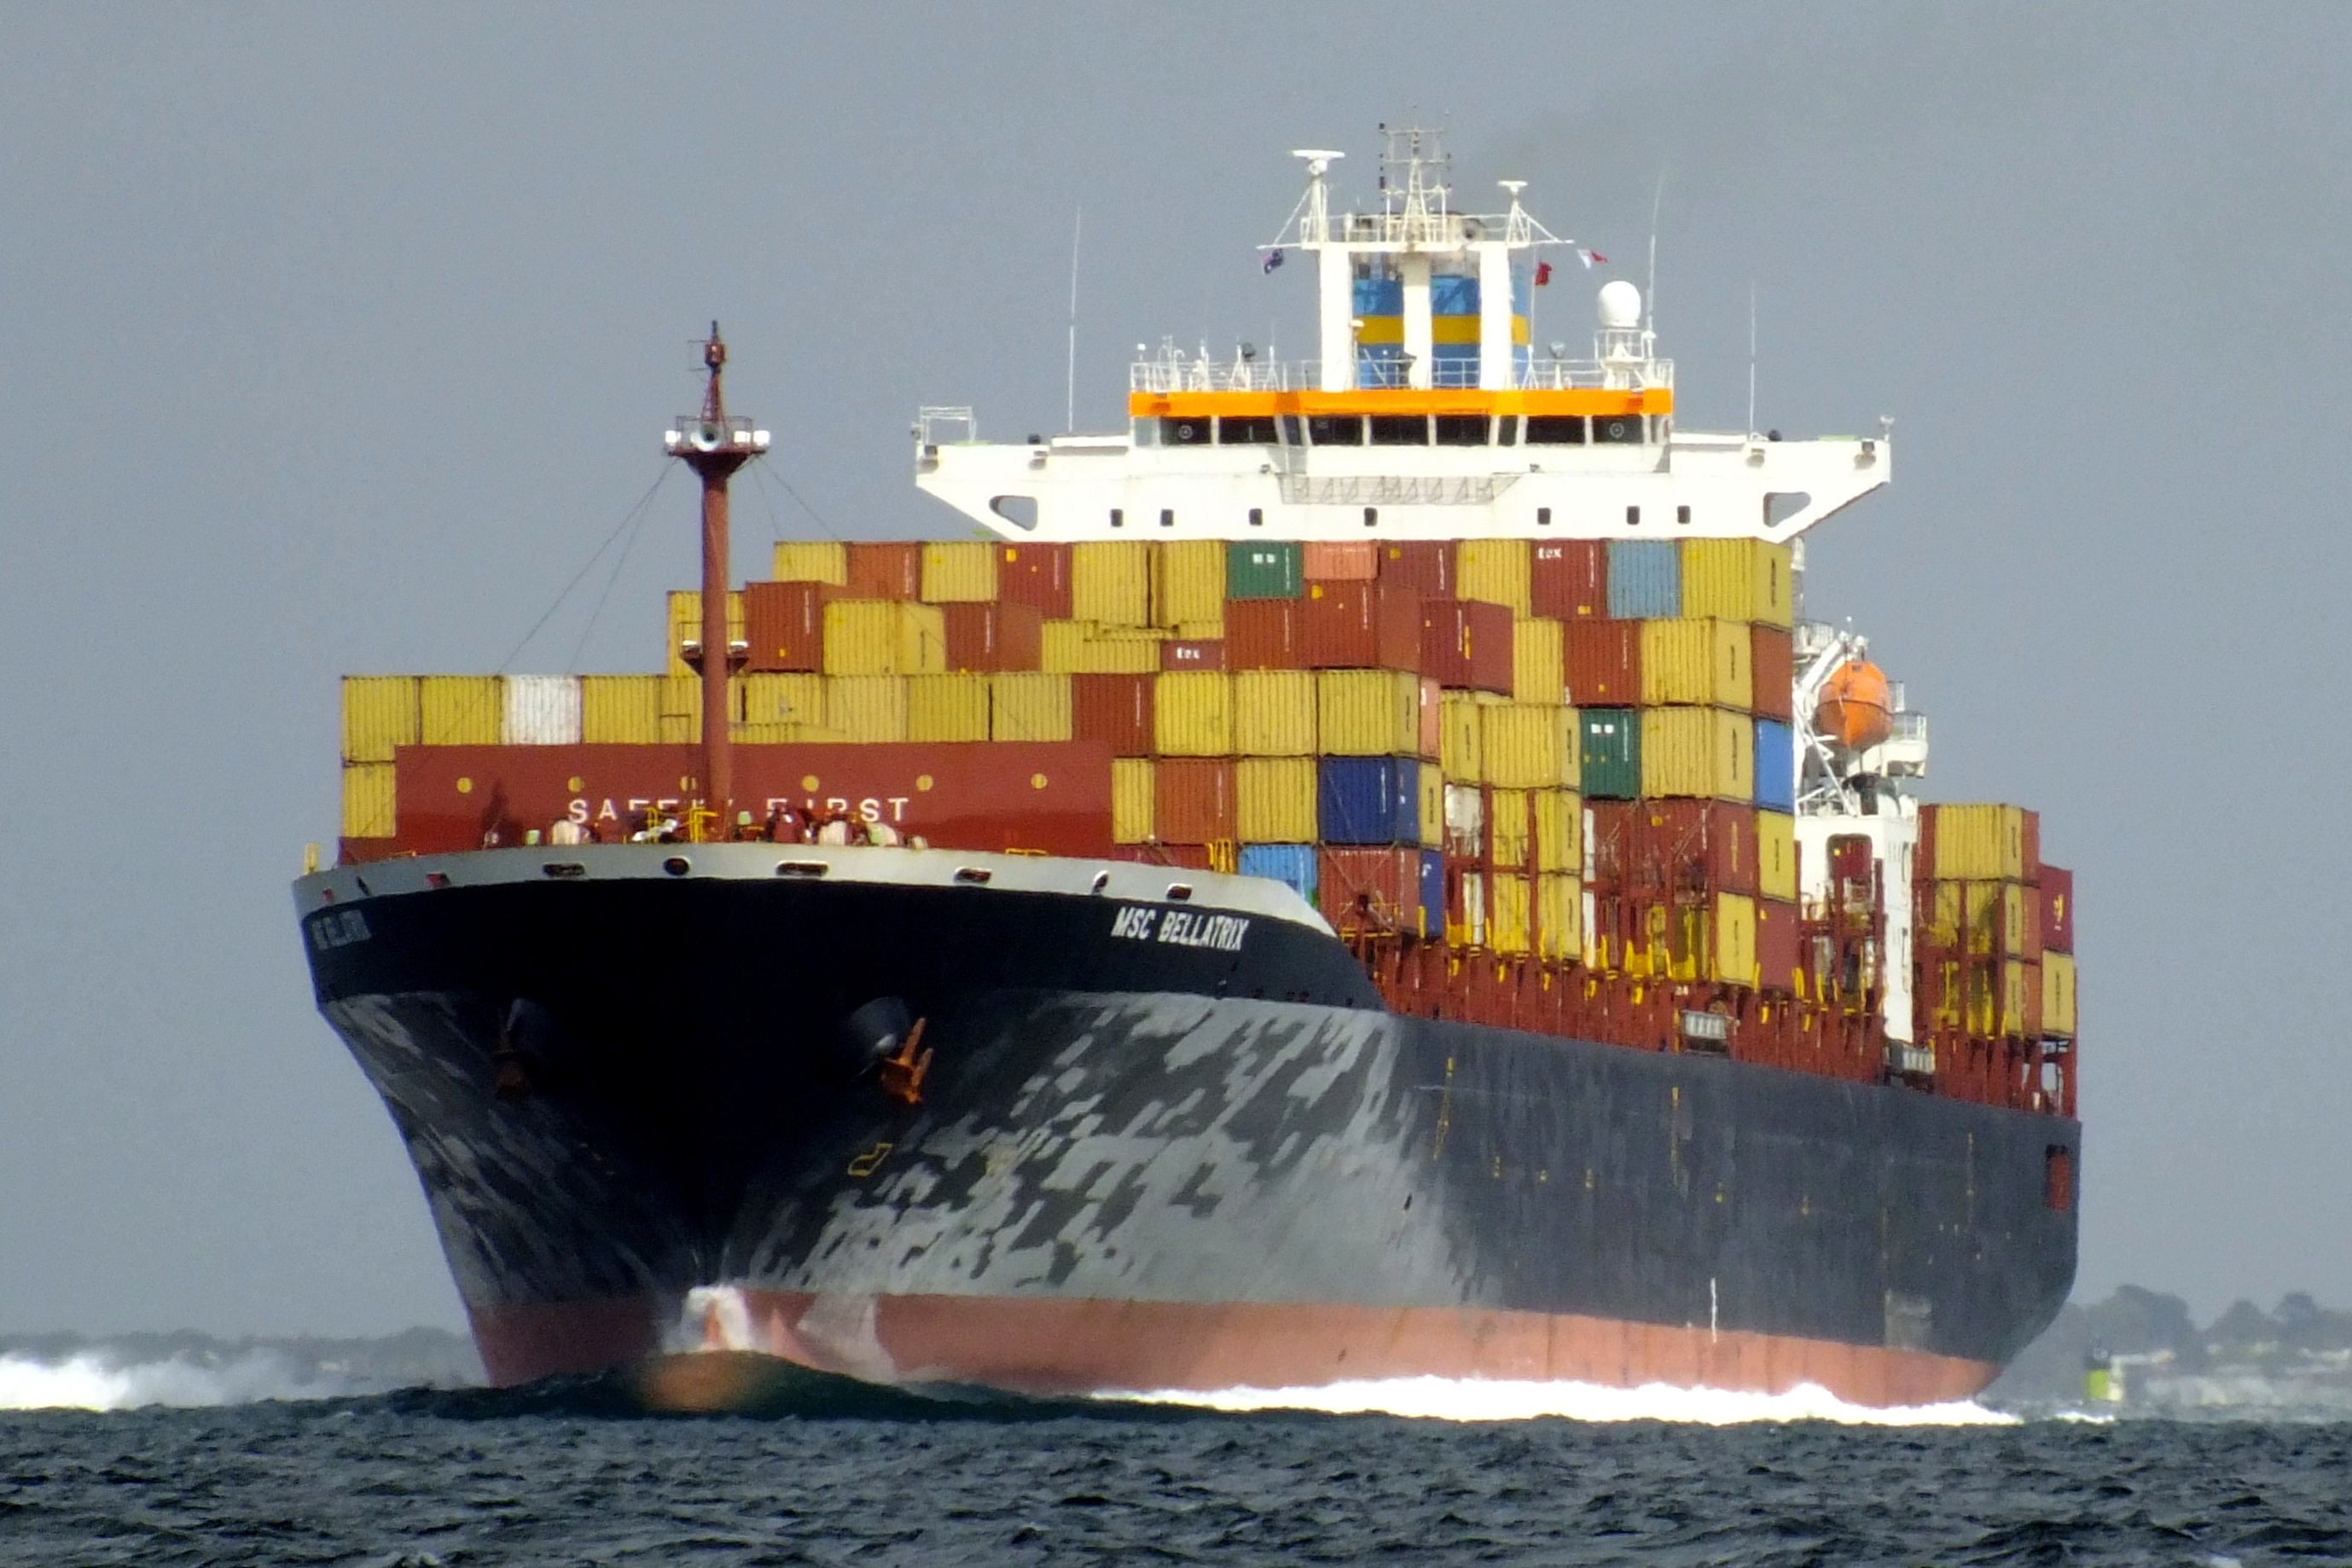 msc_bellatrix-9232096-container_ship-8-166333